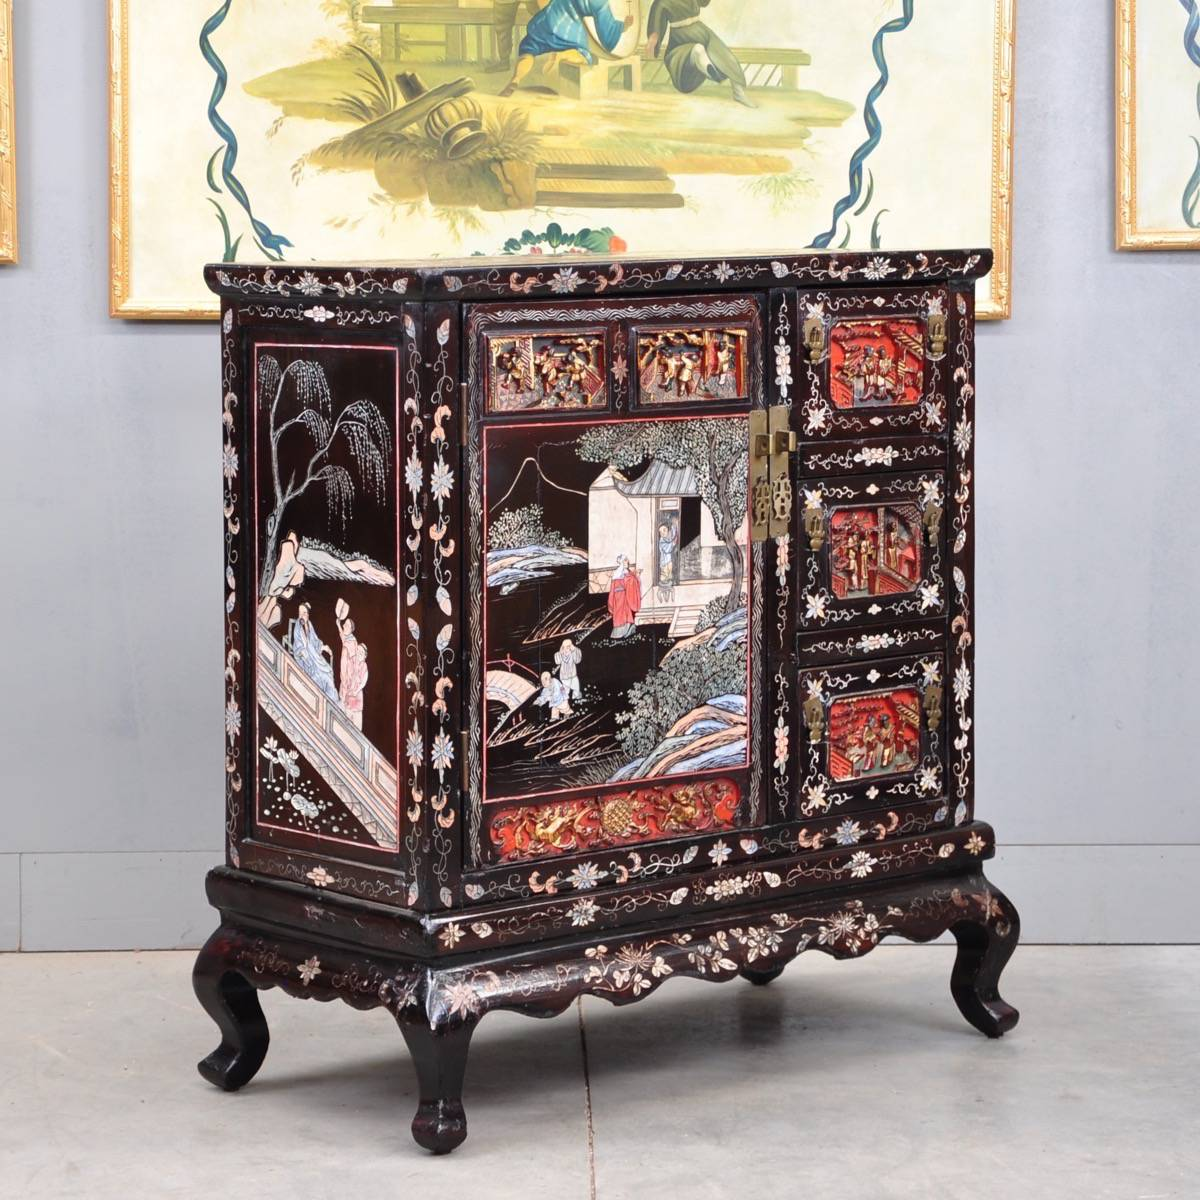 Antique Chinese lacquer cabinet - Chinese Lacquer Carved Cabinet De Grande Antique Furniture